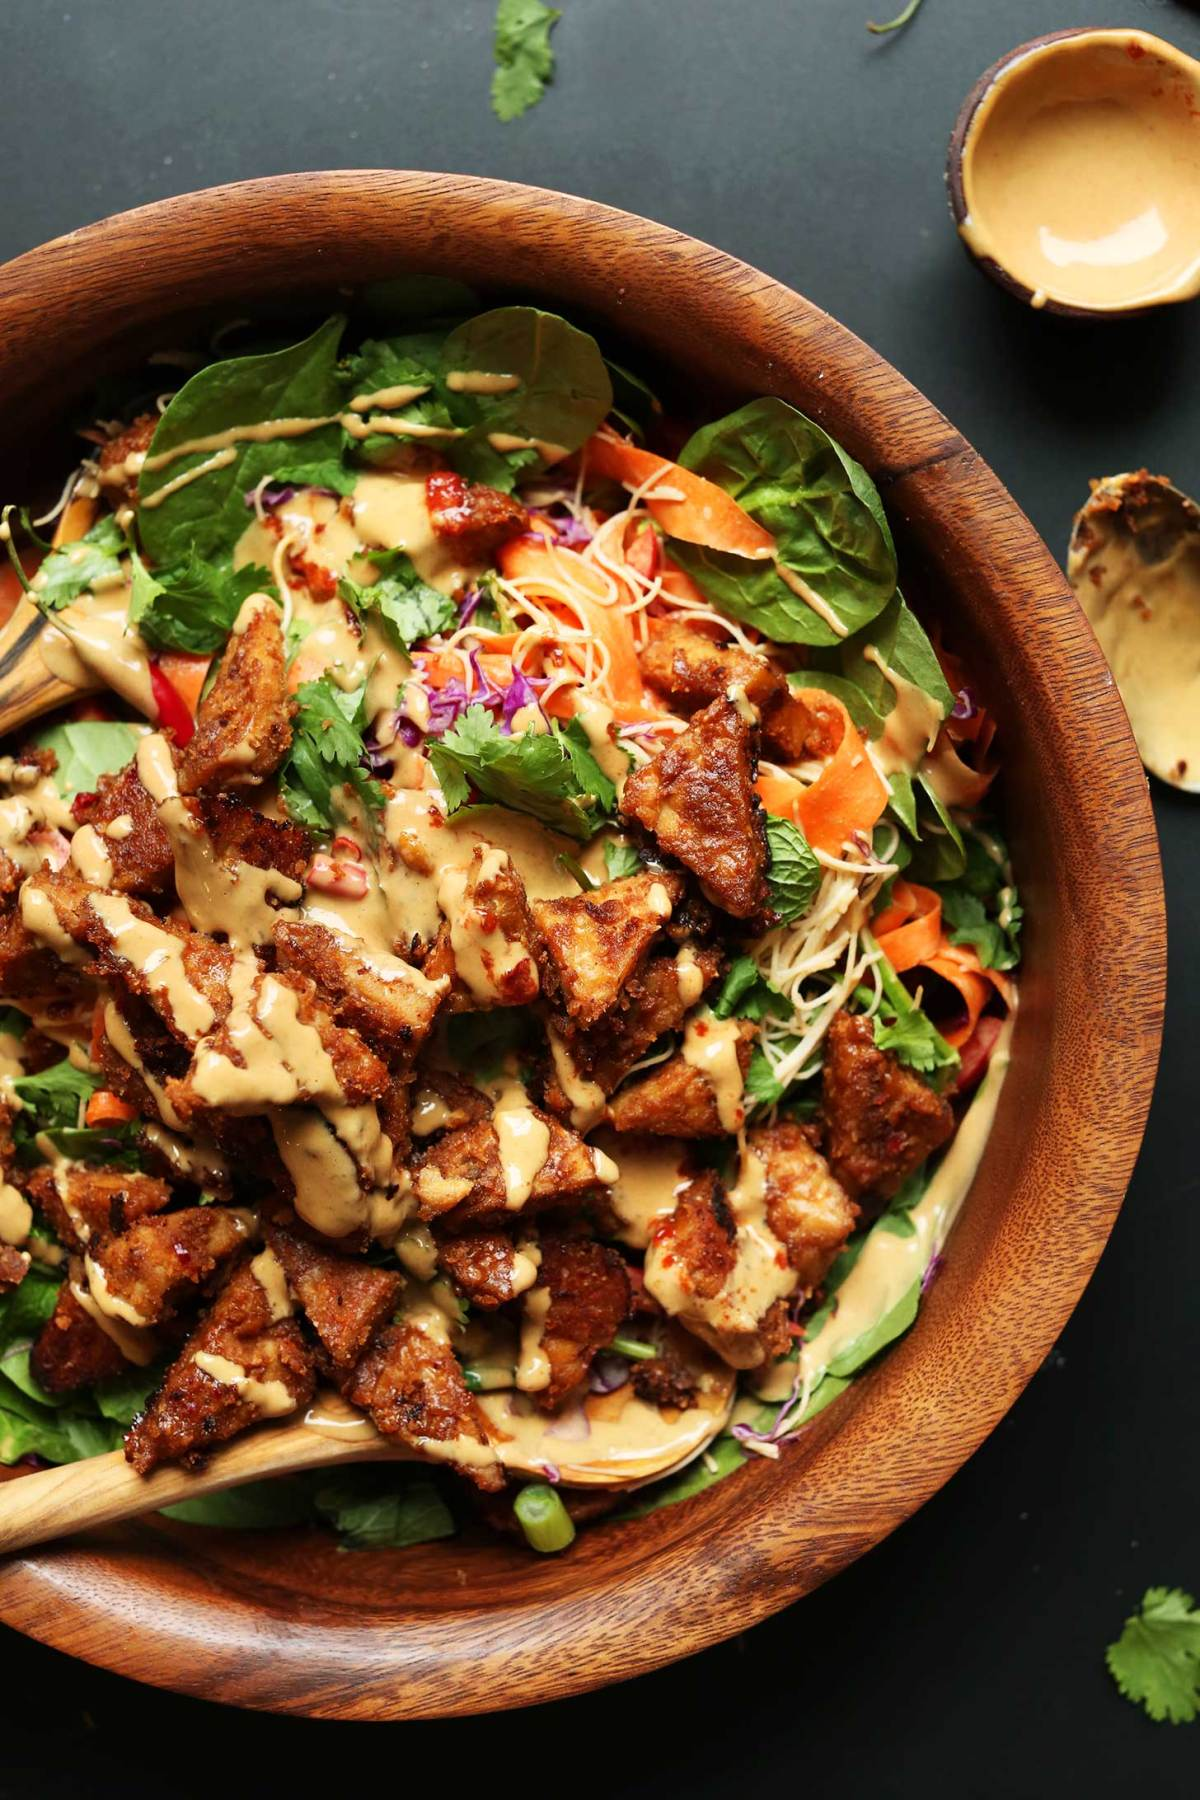 Wood bowl filled with gluten-free vegan Thai Salad with Marinated Peanut Tempeh